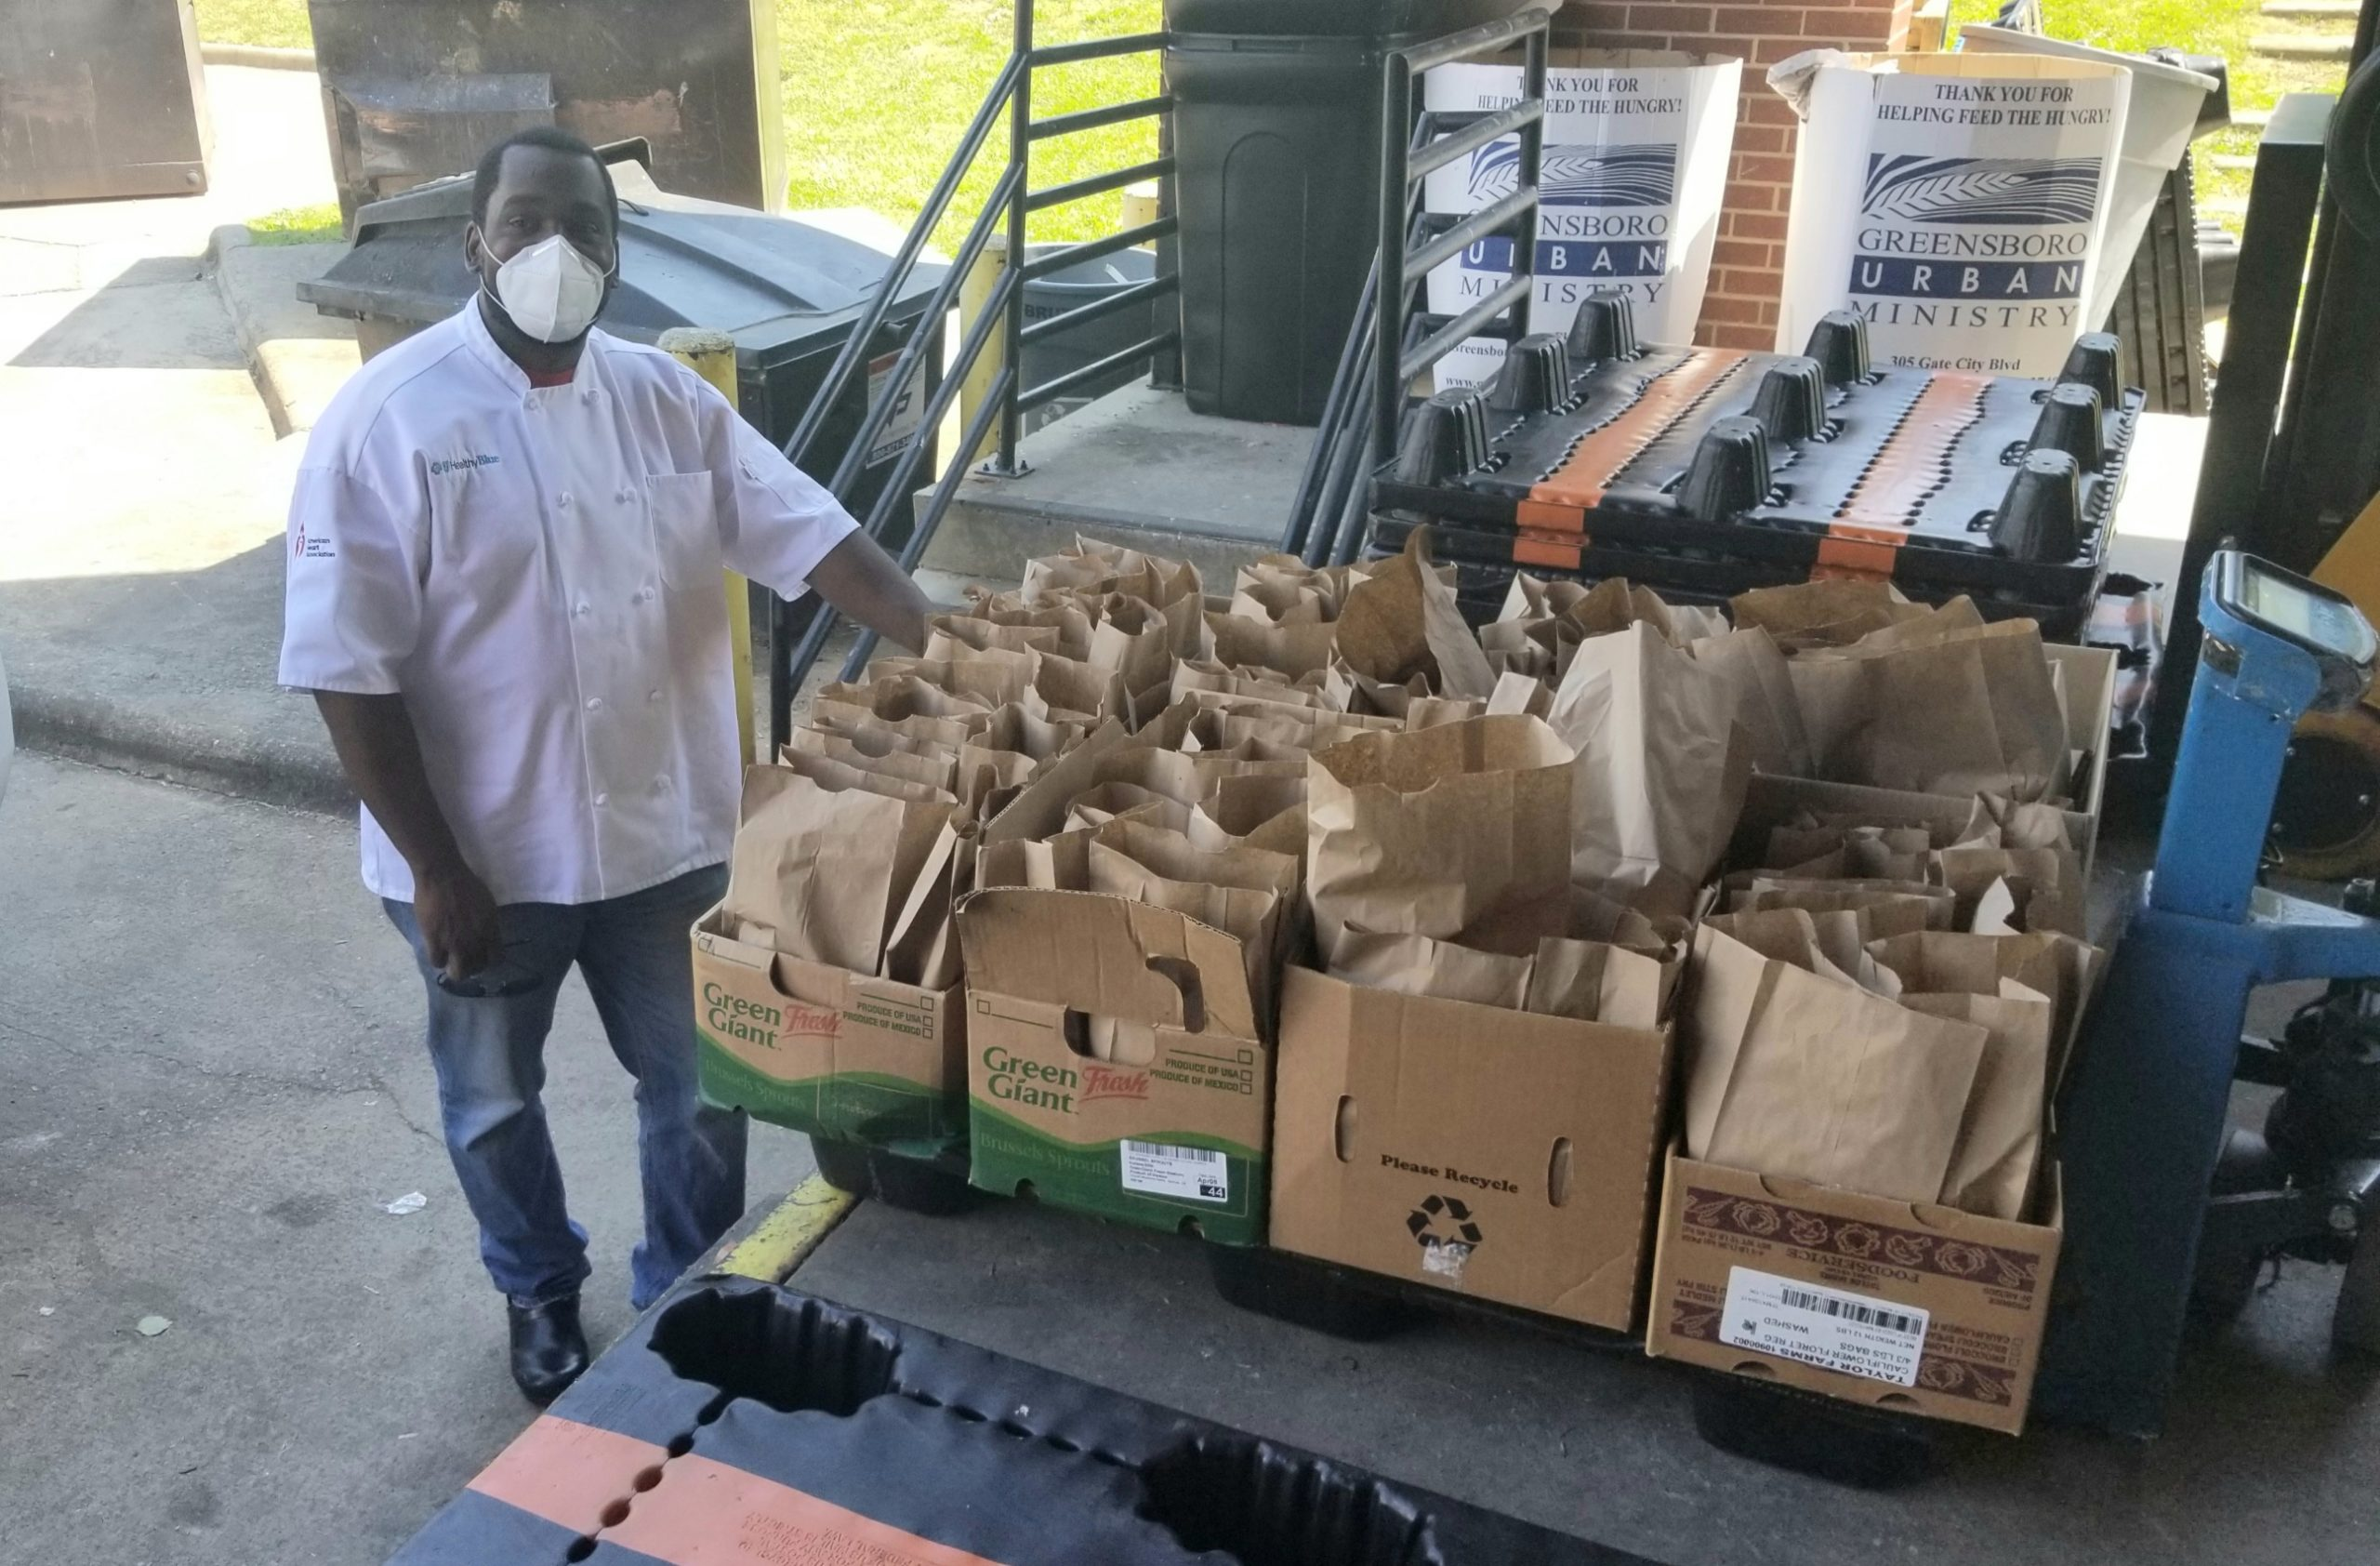 N'Gai stands next to a dozen brown bags full of meals